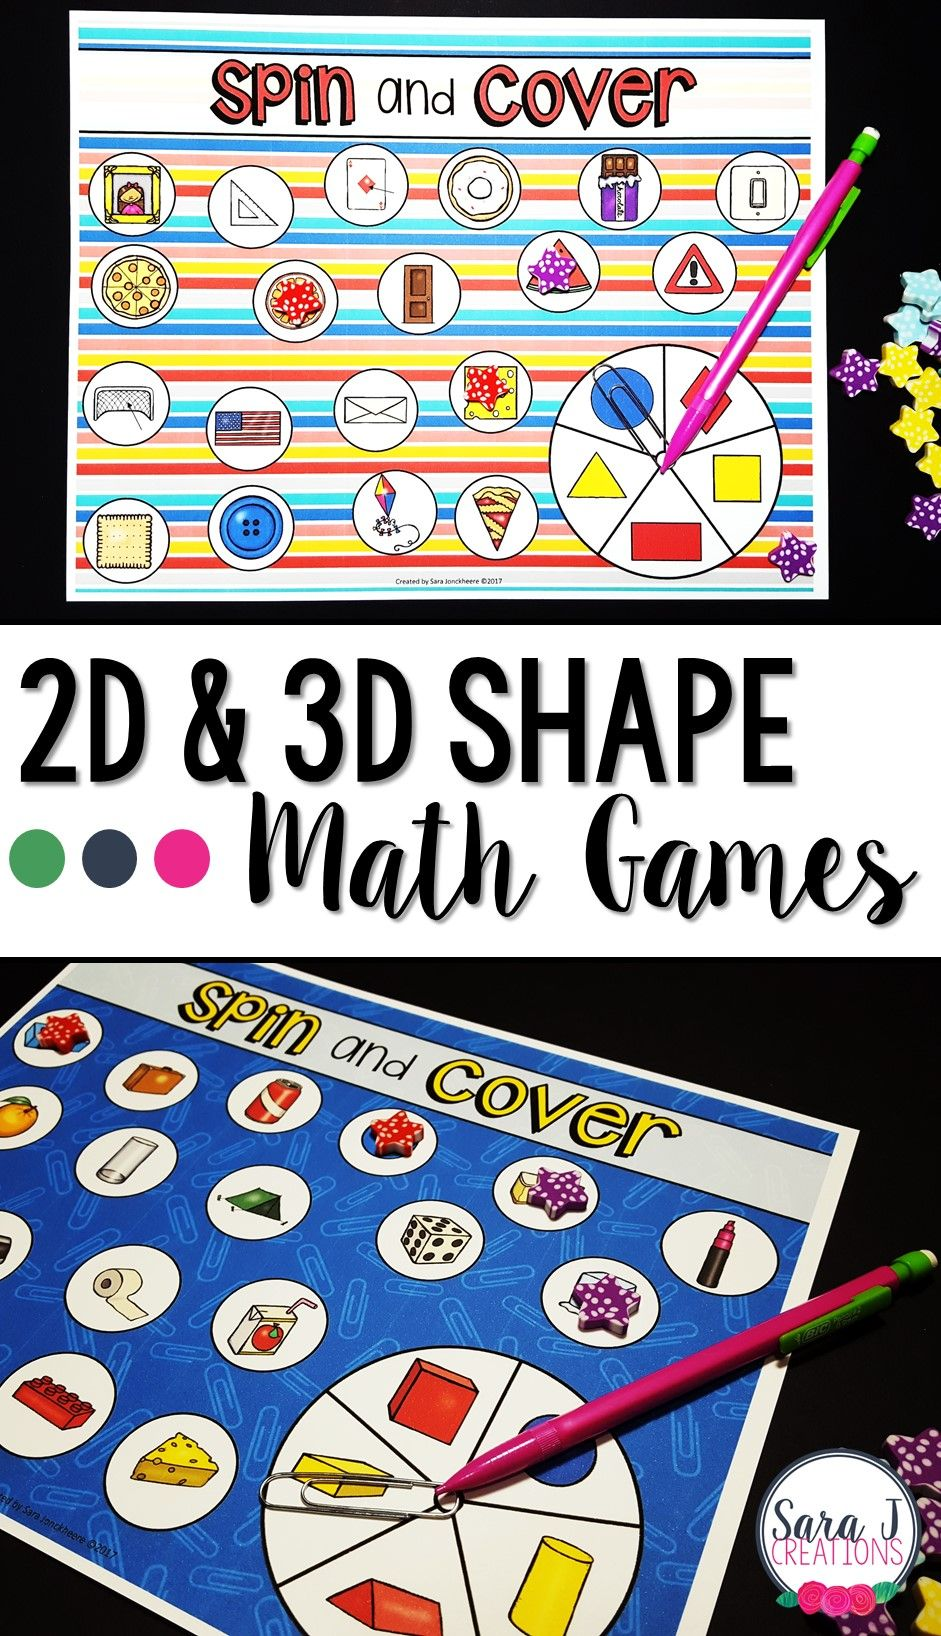 Free Printable Games For Teaching 2d And 3d Shapes With Real Life Objects Shapes Kindergarten Shape Games Shapes Preschool [ 1636 x 941 Pixel ]